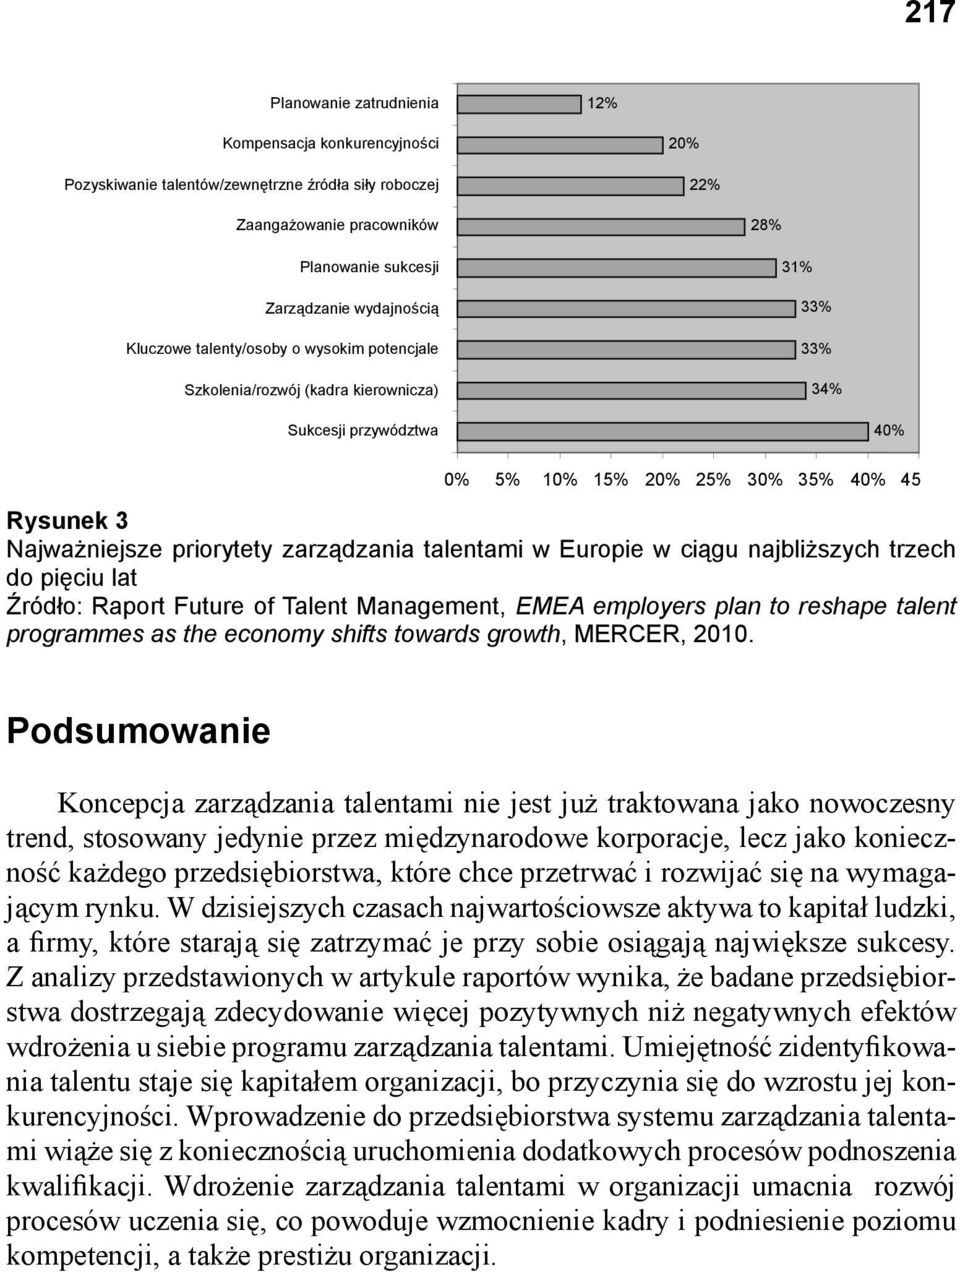 zarządzania talentami w Europie w ciągu najbliższych trzech do pięciu lat Źródło: Raport Future of Talent Management, EMEA employers plan to reshape talent programmes as the economy shifts towards